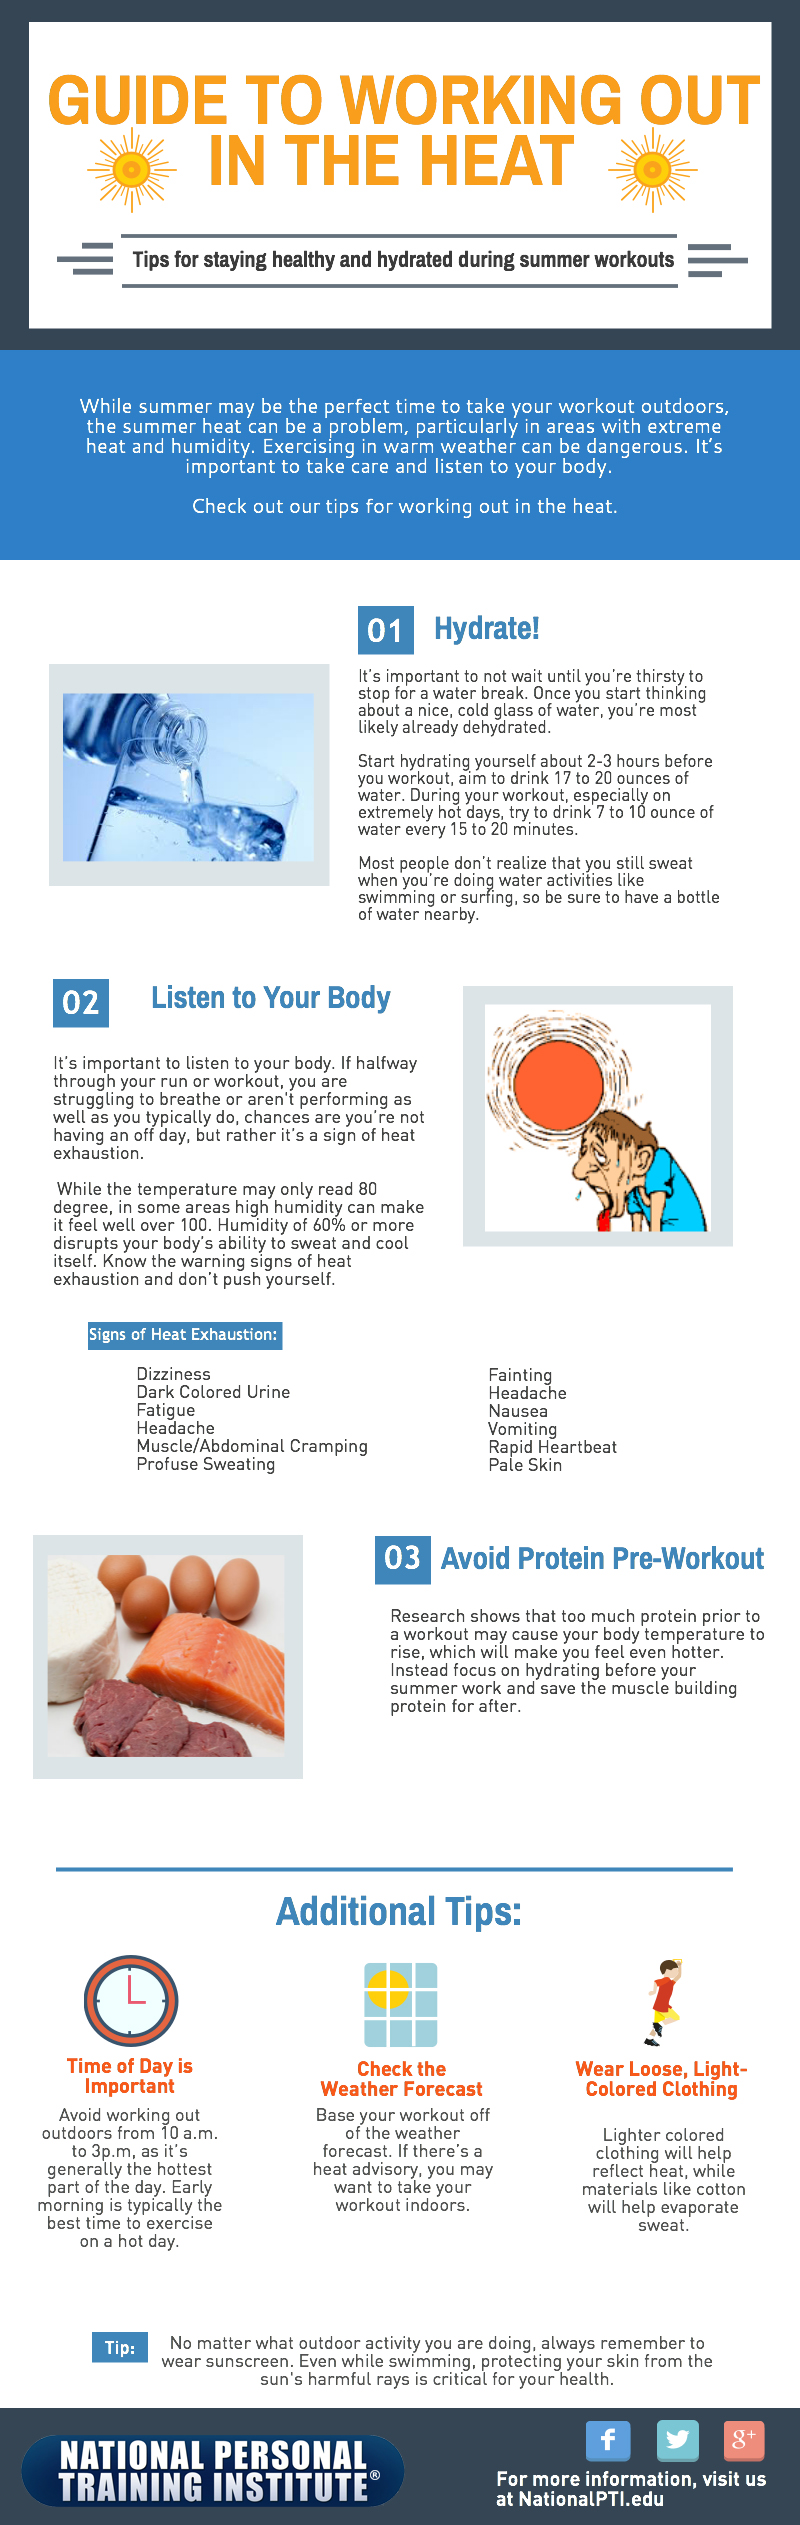 Working out in the heat tips- NPTI Fitness